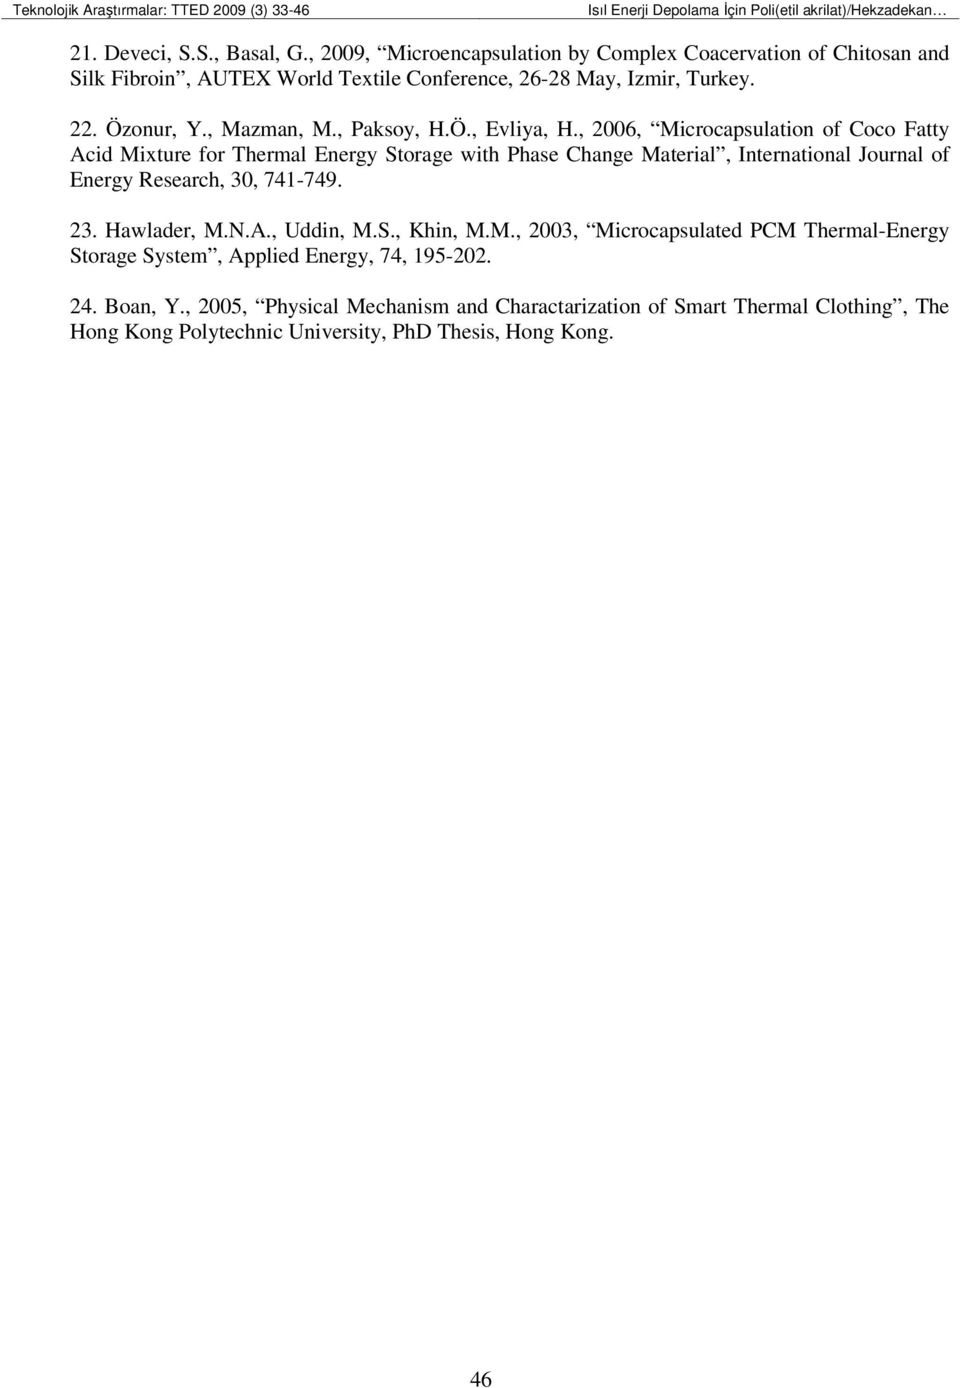 , 2006, Microcapsulation of Coco Fatty Acid Mixture for Thermal Energy Storage with Phase Change Material, International Journal of Energy Research, 30, 741-749. 23. Hawlader, M.N.A., Uddin, M.